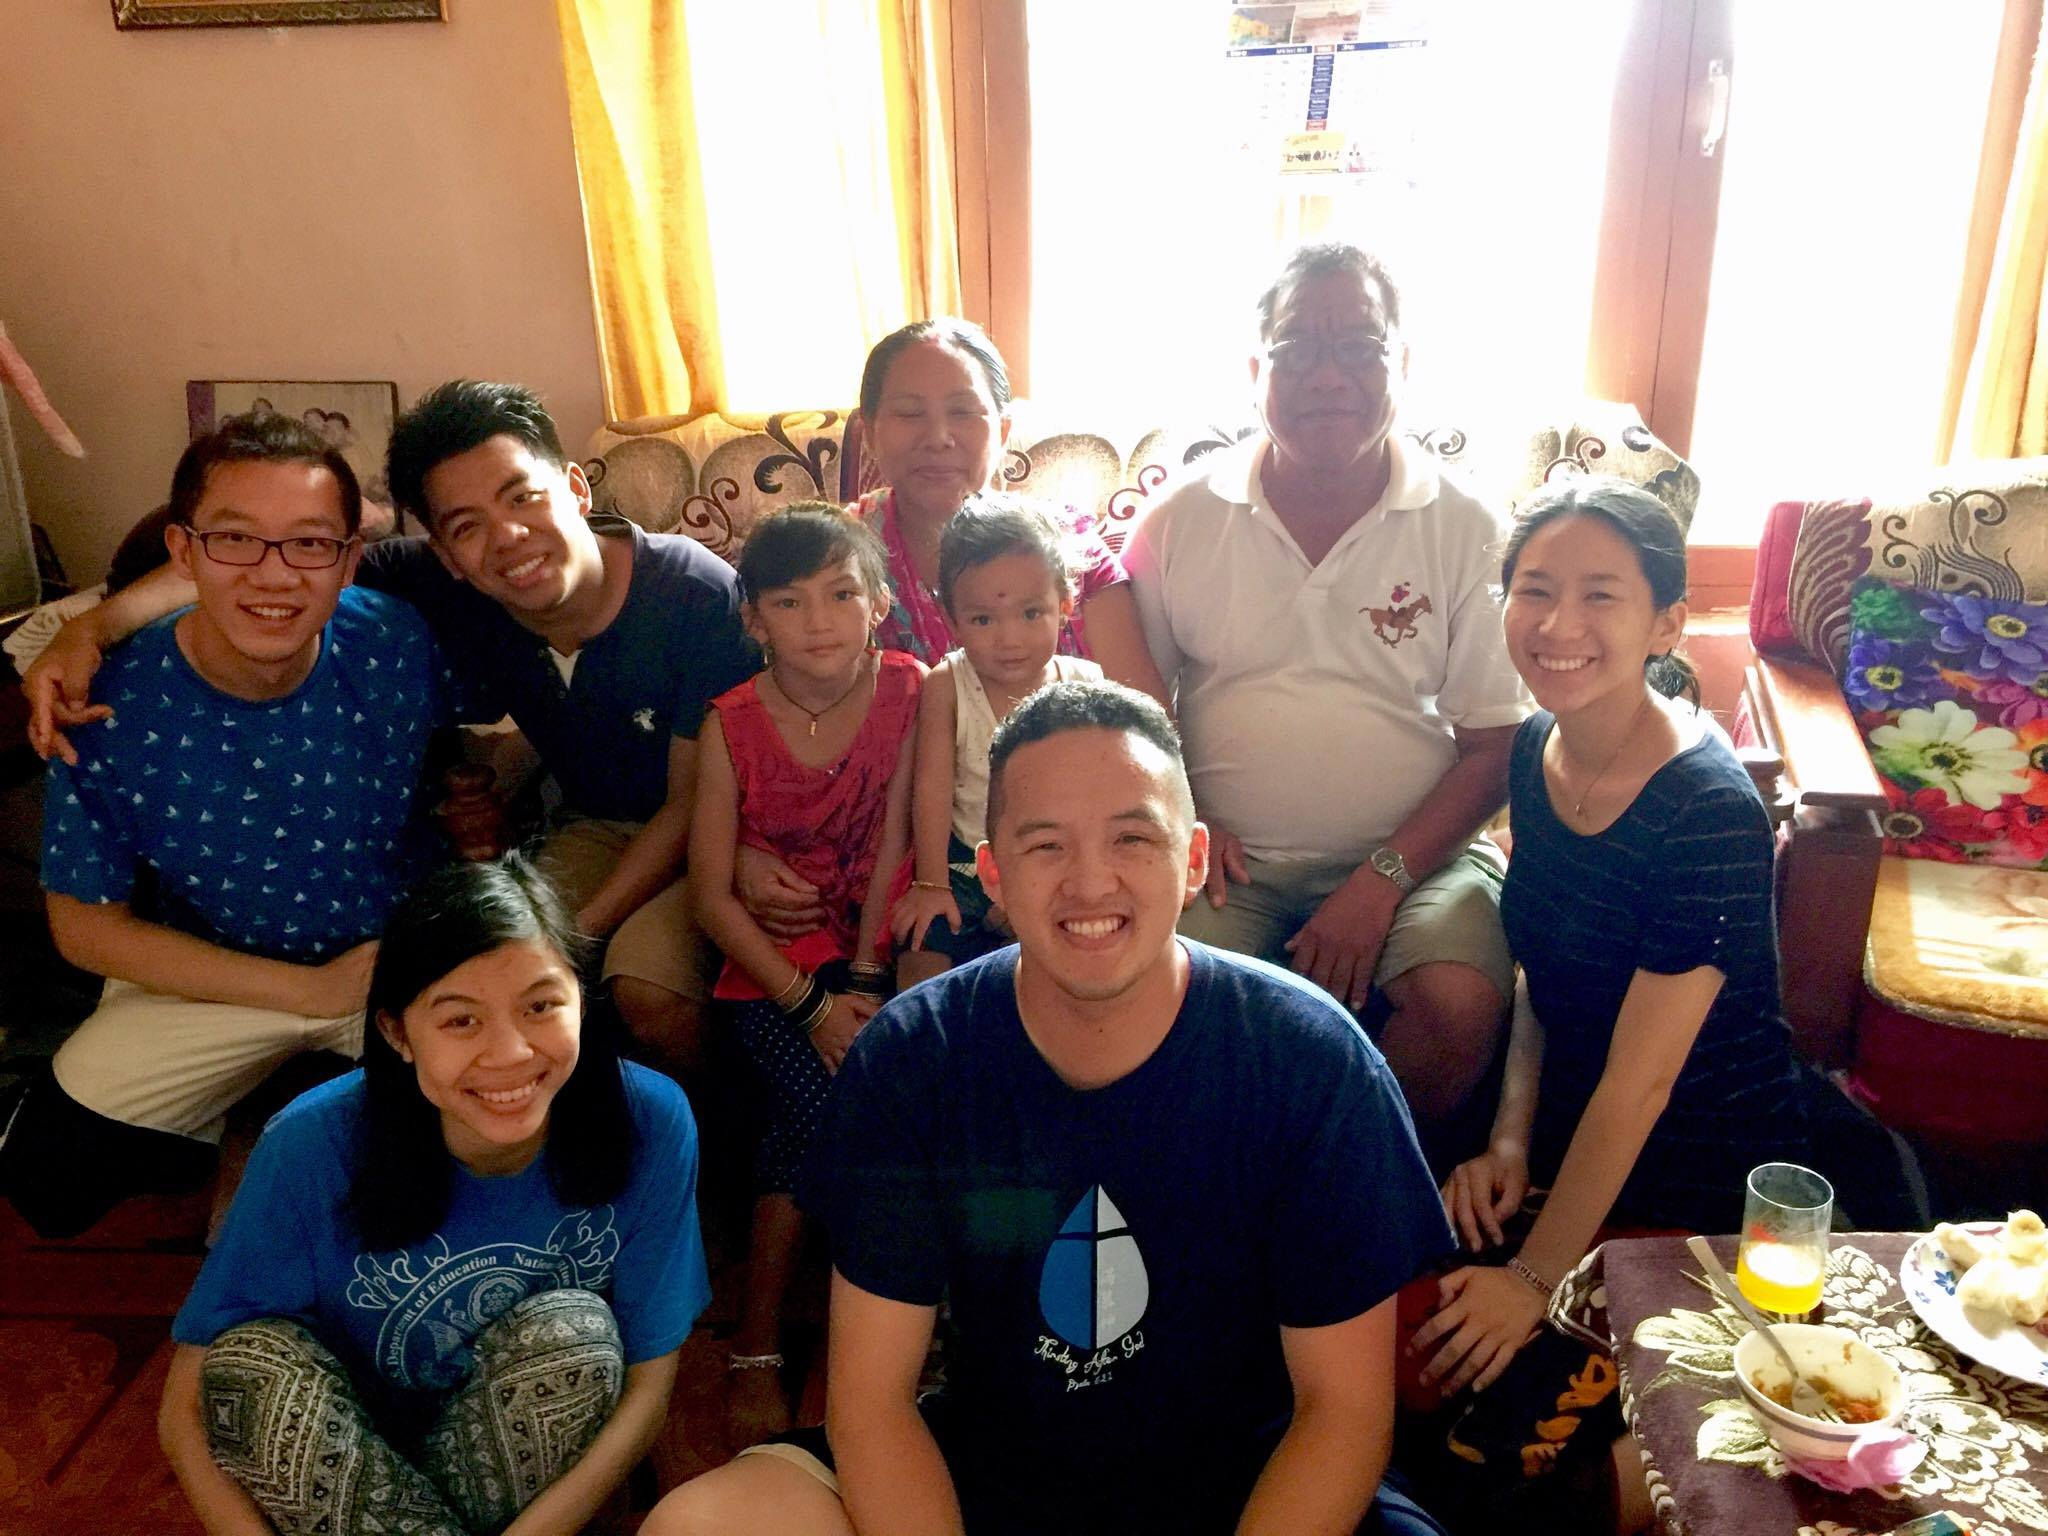 House visitations were always a highlight for us. Here is part of the team hanging out with one of our student's family!